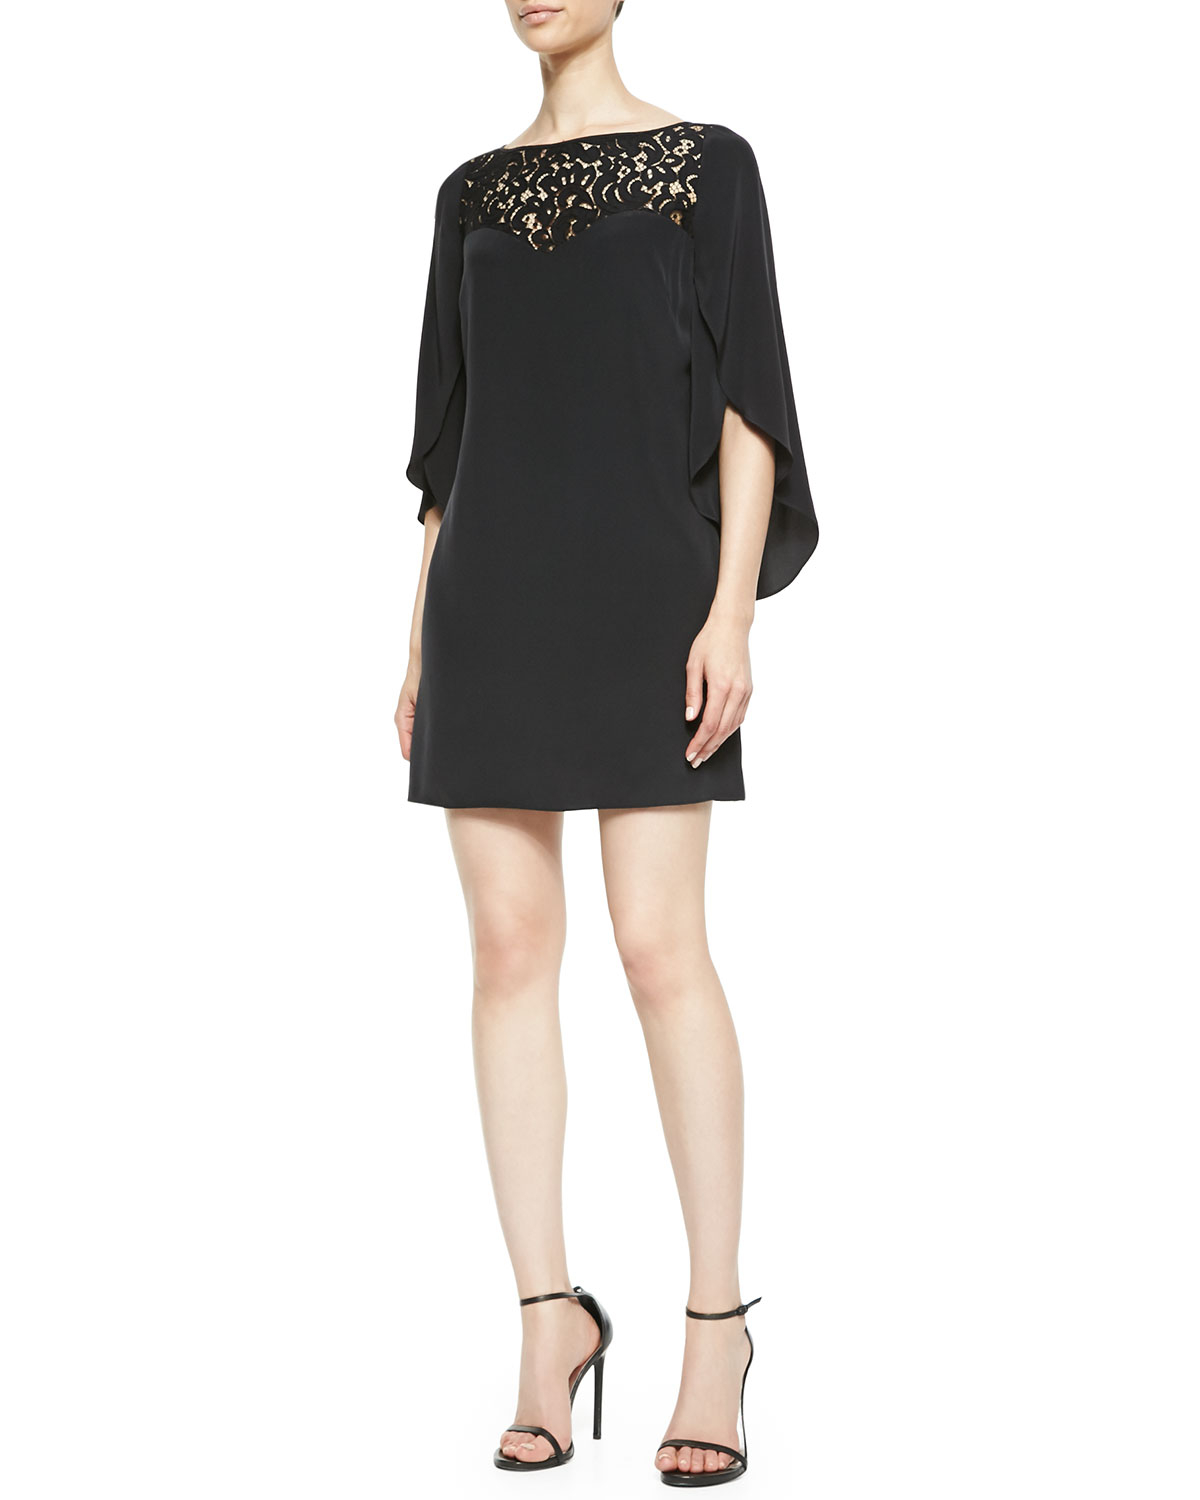 The black butterflies sparkle and the tulle give this dress a magical, otherworldly quality. Looks and feels very well made. The dress is built to stay put with several safety features.9/